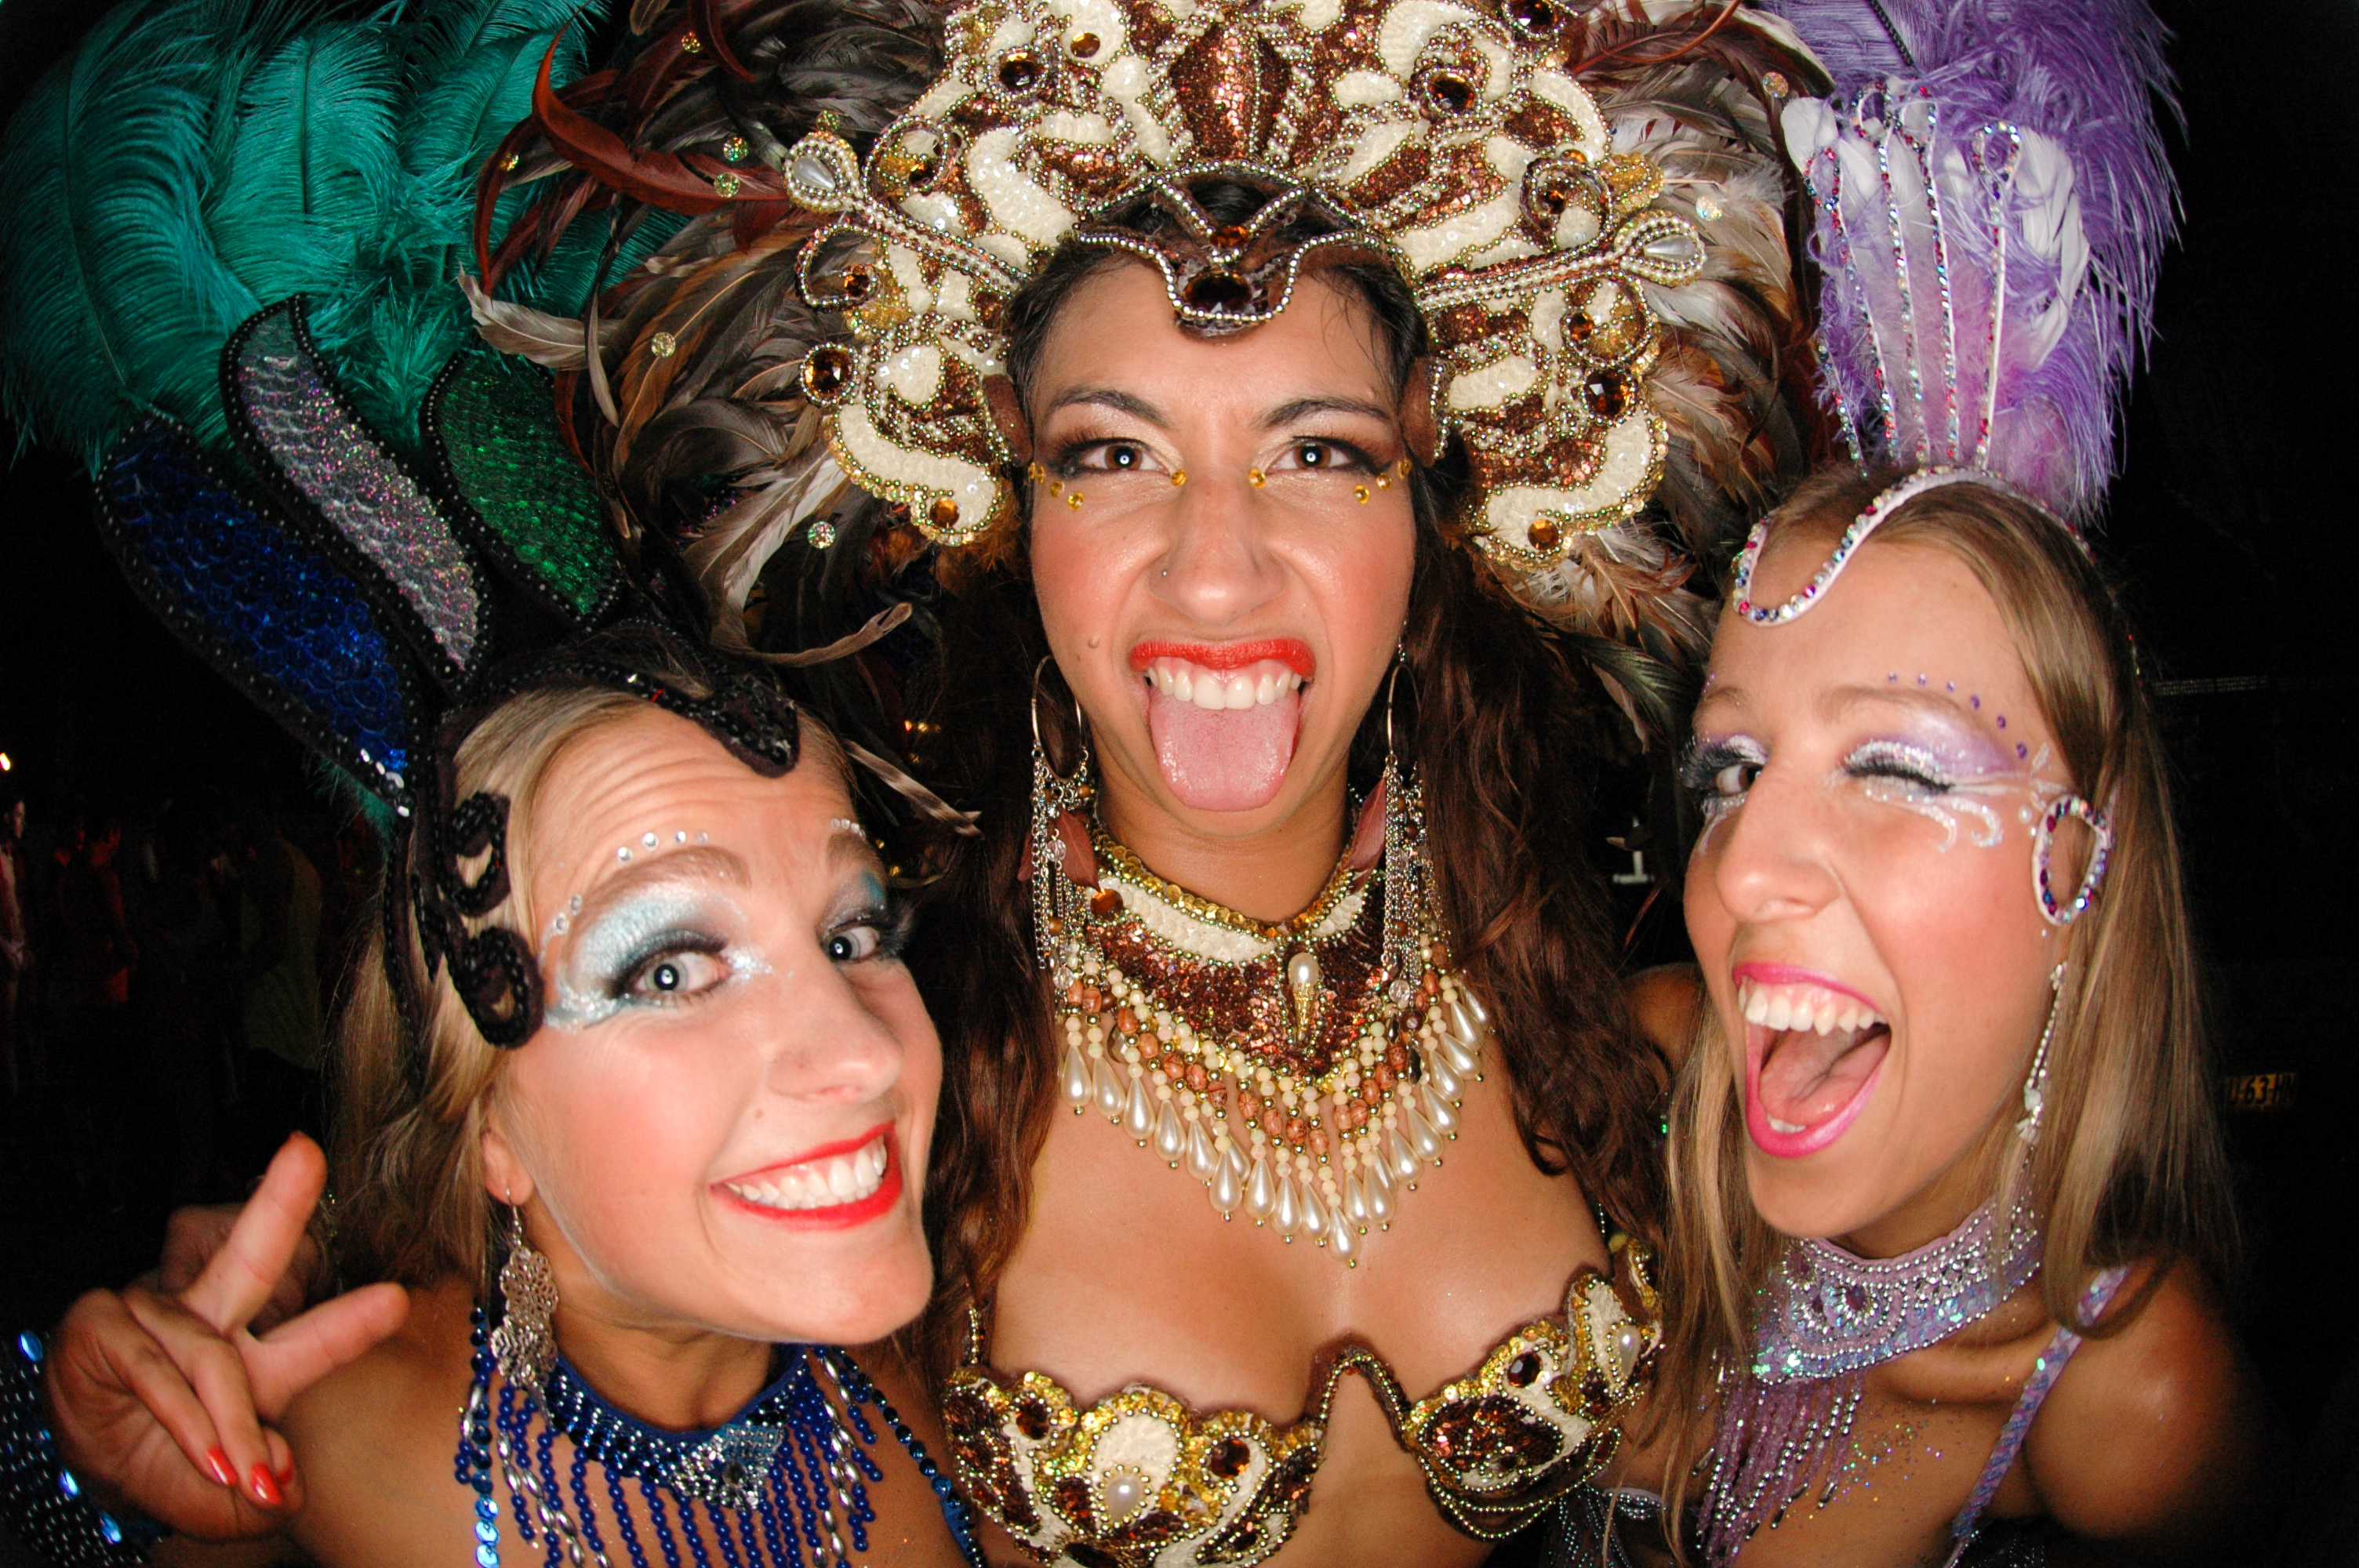 Sydney Gay and Lesbian Mardi Gras 2014: Fisheye Portraits